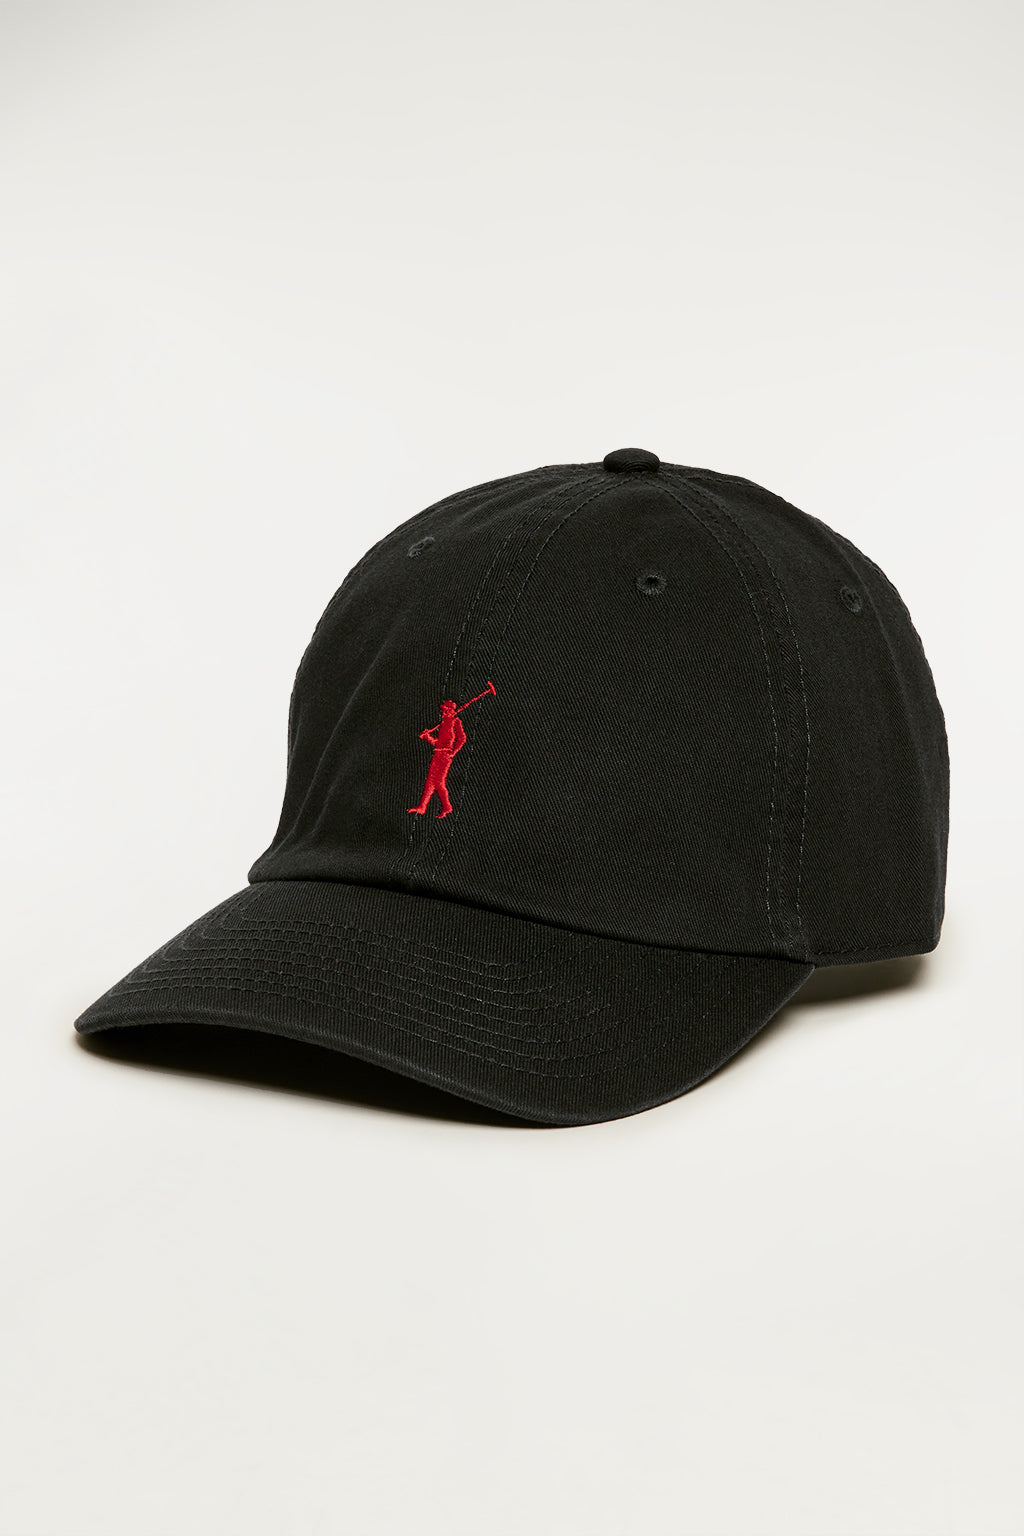 Black cap with contrast embroidered logo